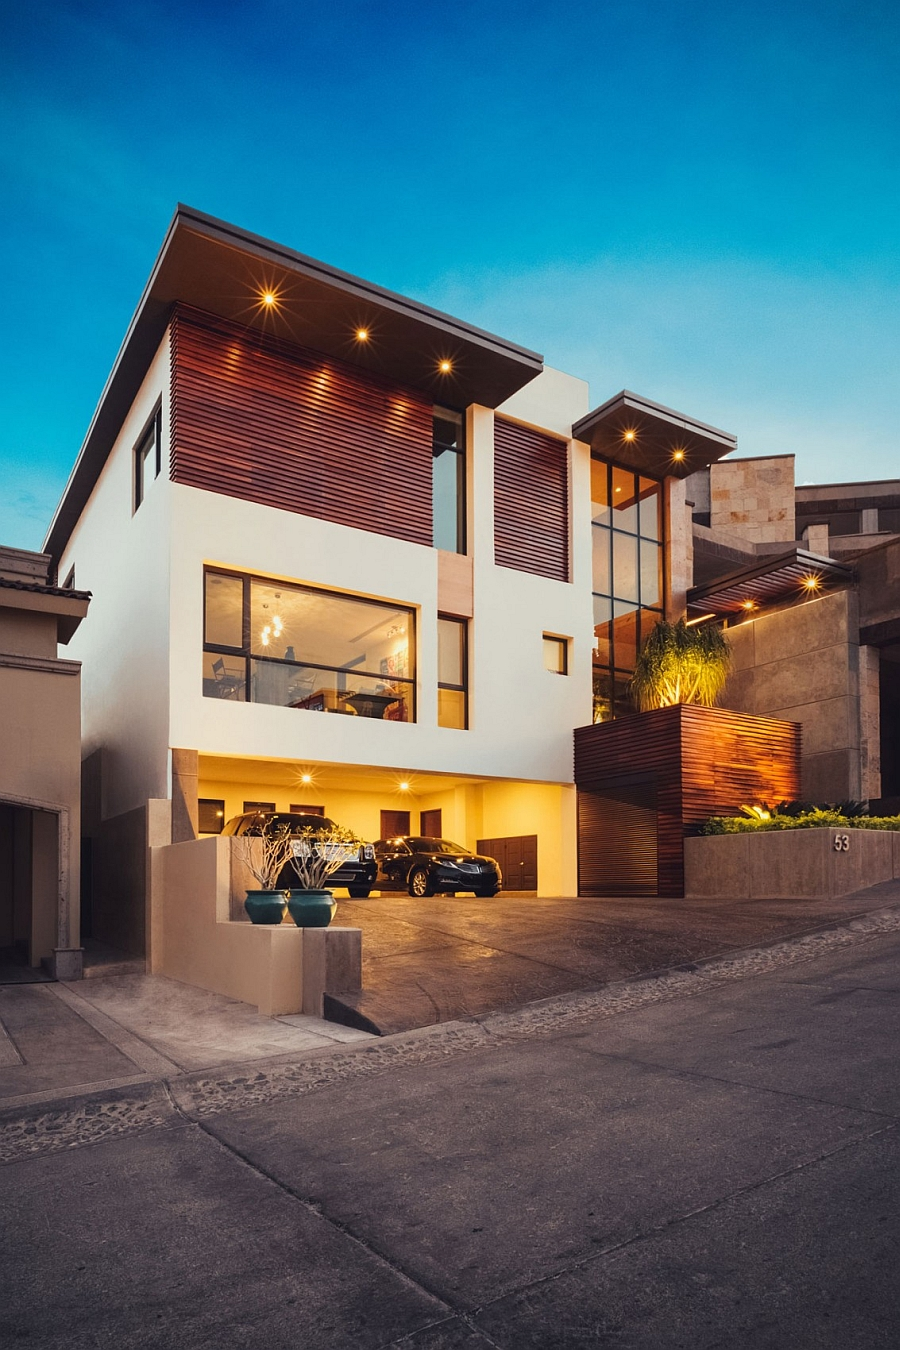 Street View of the Lavish Private Mexican Home